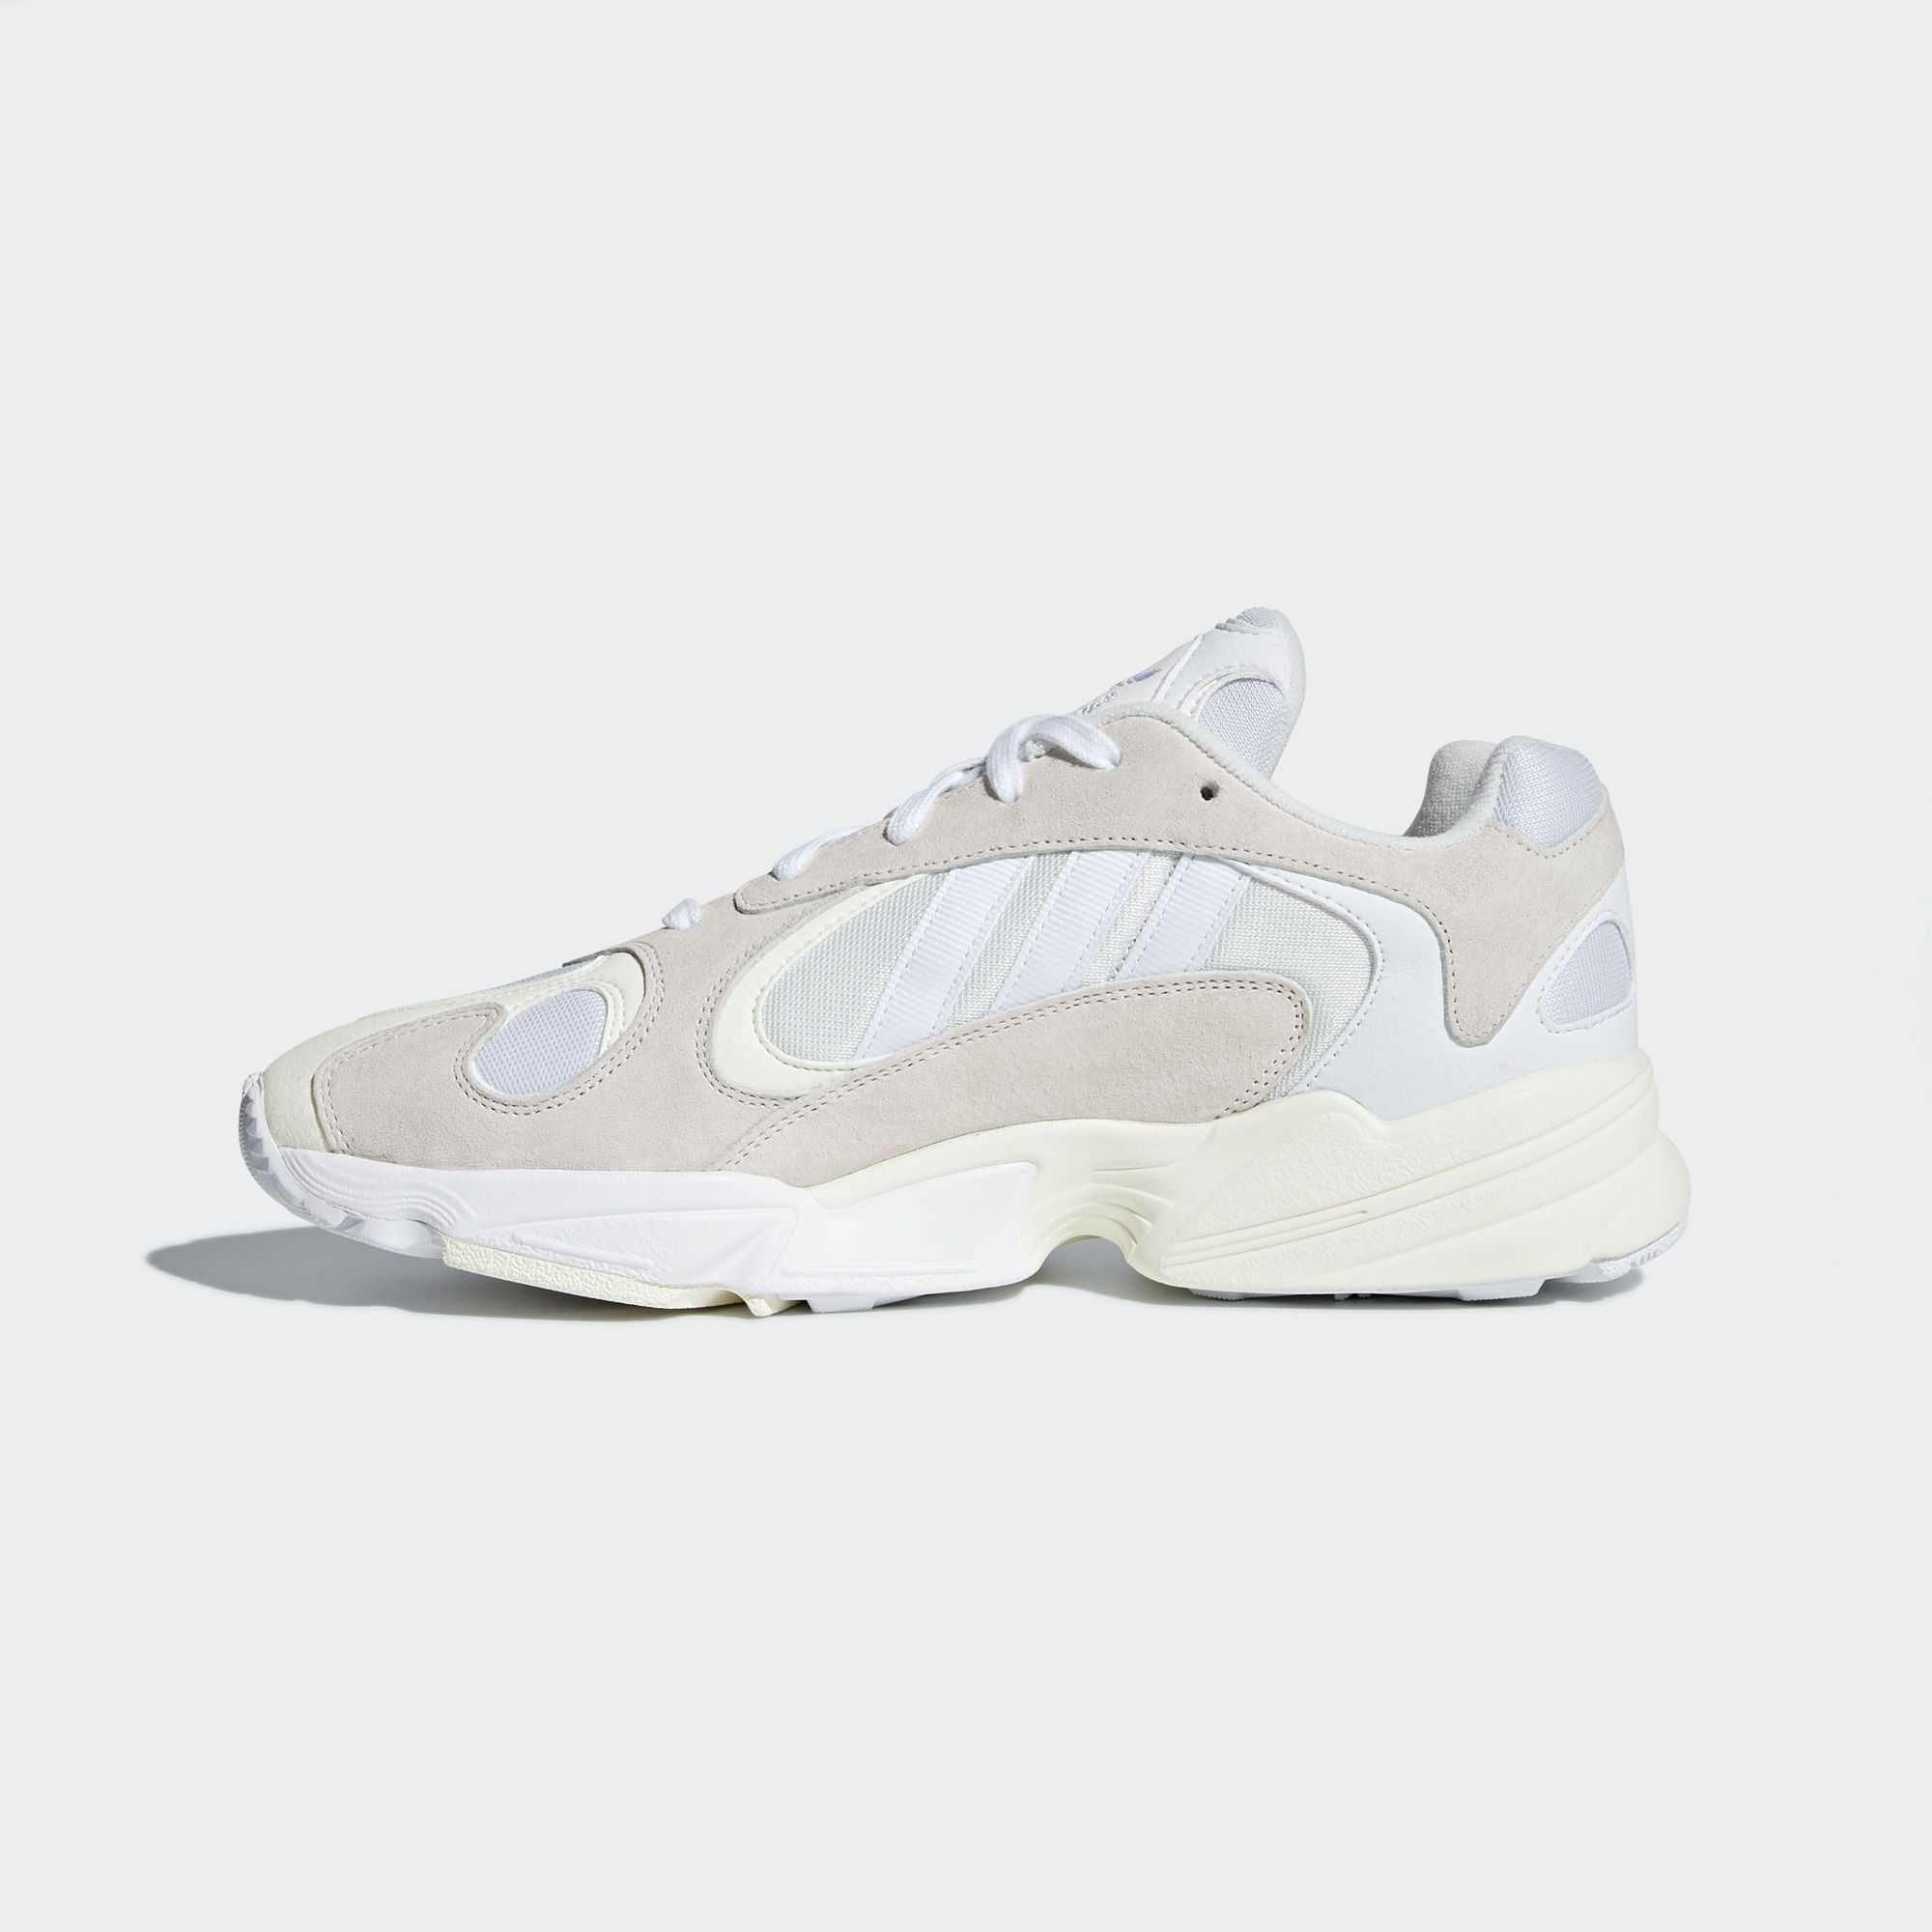 THE CUT | ADIDAS YUNG 1 CLOUD WHITE